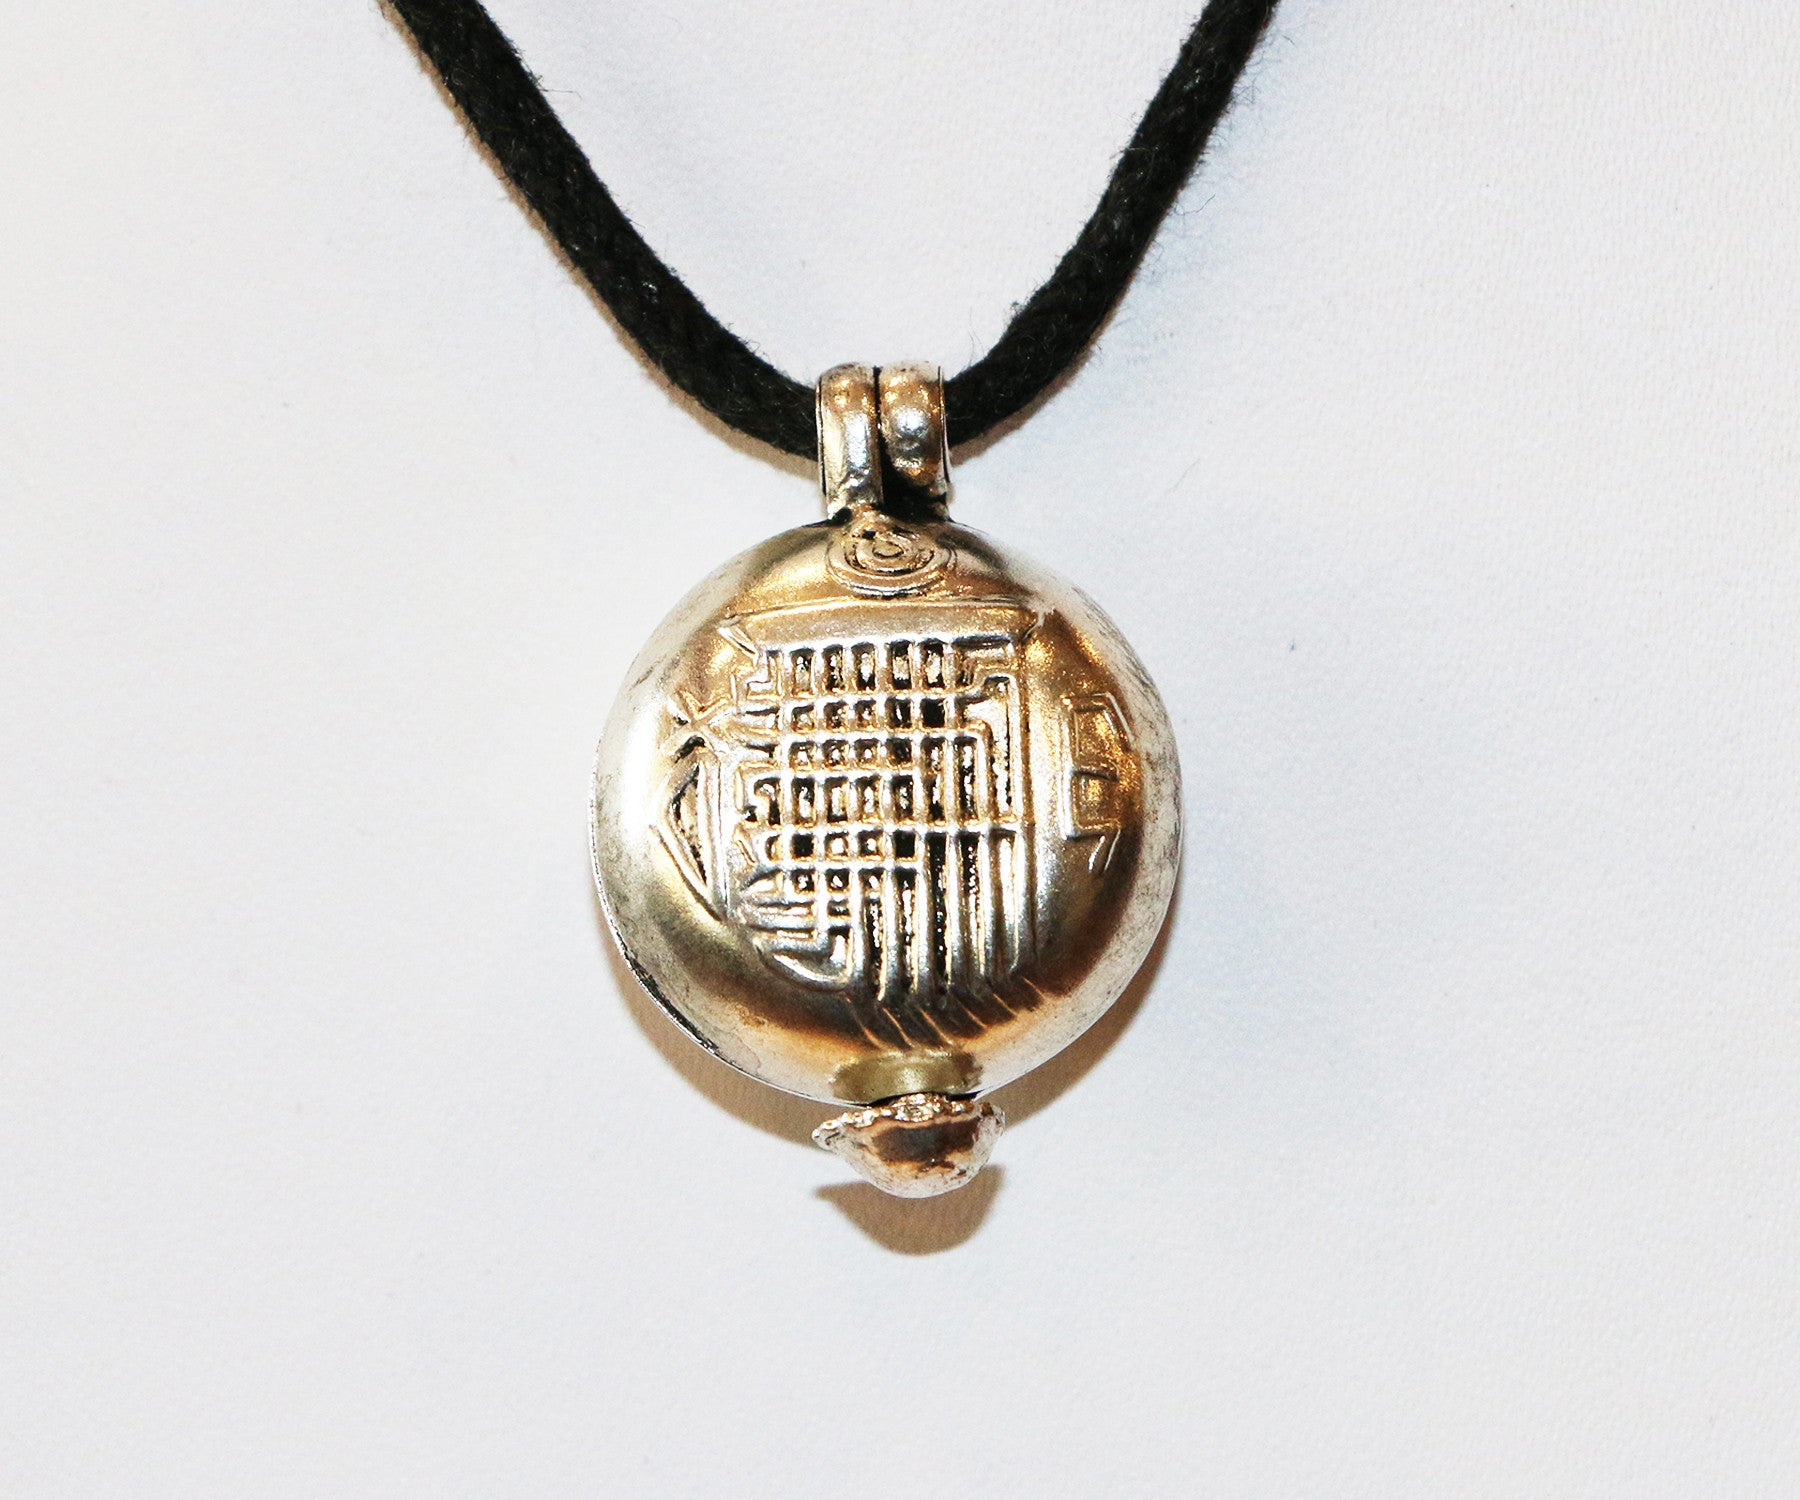 The Travel Amulet - Tibet Arts & Healing